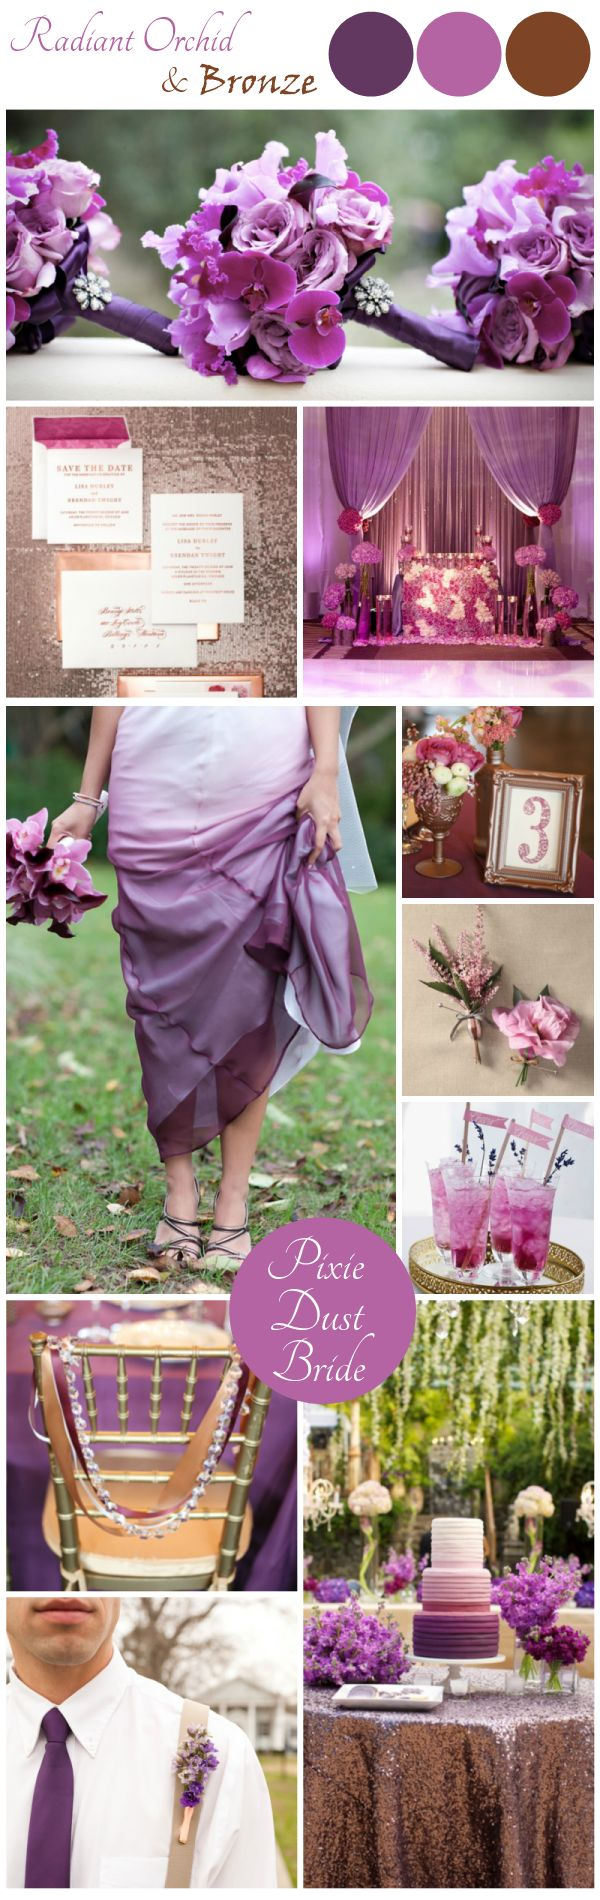 It's official - I'm obsessed with the Pantone Color of the Year, Radiant Orchid! I made this Bronze and Orchid Wedding Inspiration Board and love it.